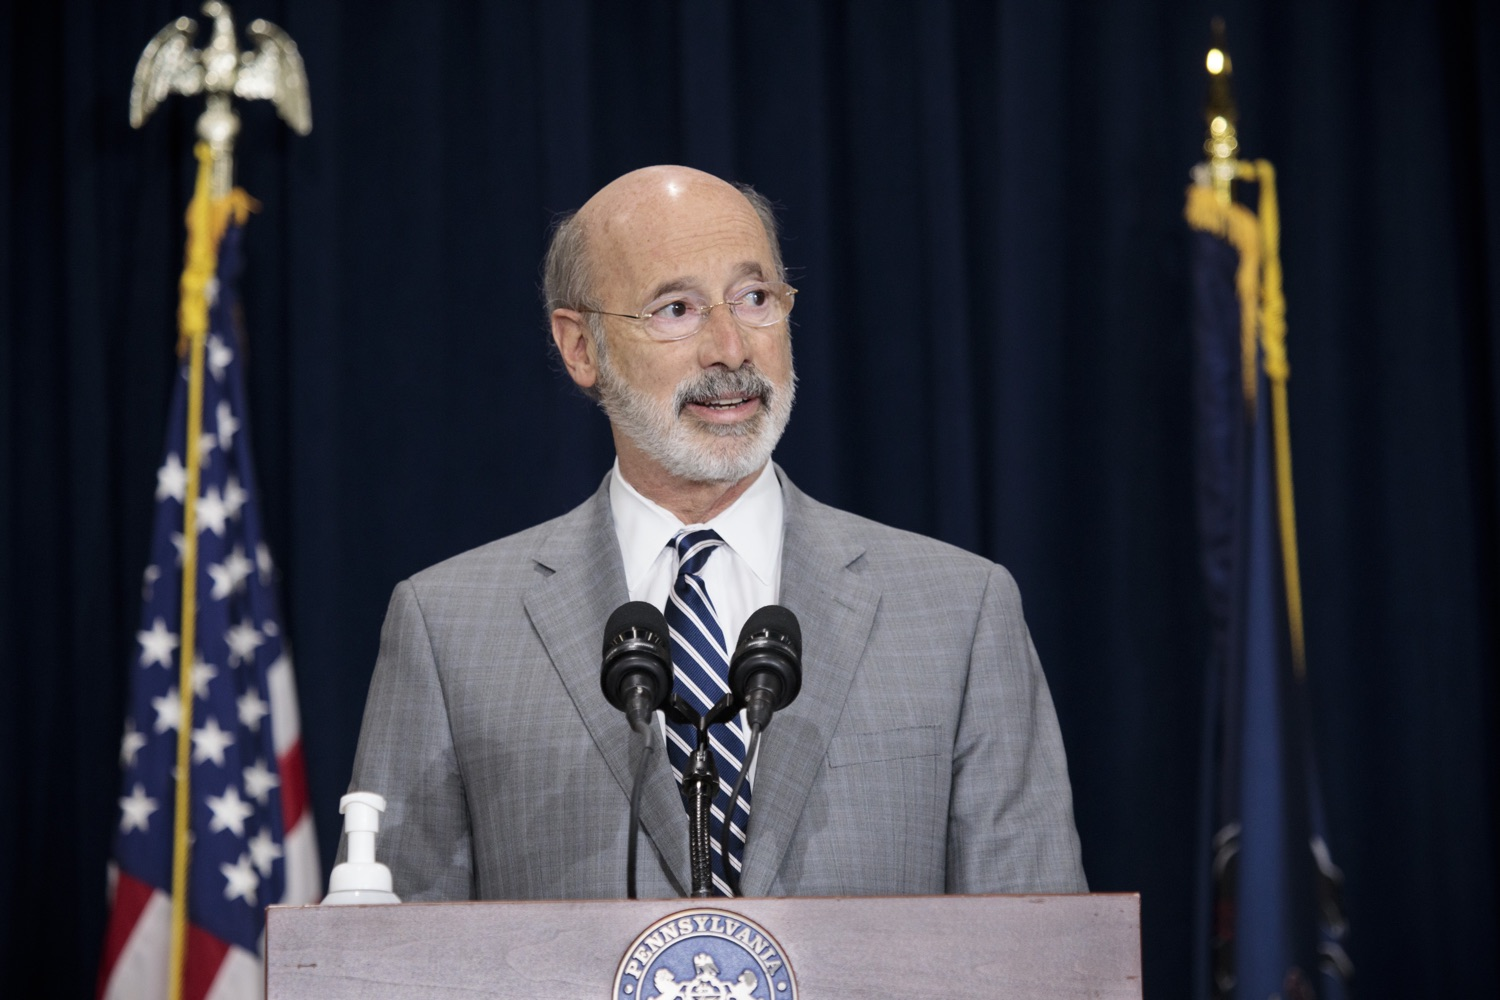 """<a href=""""https://filesource.wostreaming.net/commonwealthofpa/photo/18380_gov_election_update_dz_002.jpg"""" target=""""_blank"""">⇣Download Photo<br></a>Pennsylvania Governor Tom Wolf speaks to the press.  Governor Tom Wolf and Pennsylvania Secretary of State Kathy Boockvar gave an update on the election process in Pennsylvania. NOVEMBER 04, 2020 - HARRISBURG, PA"""